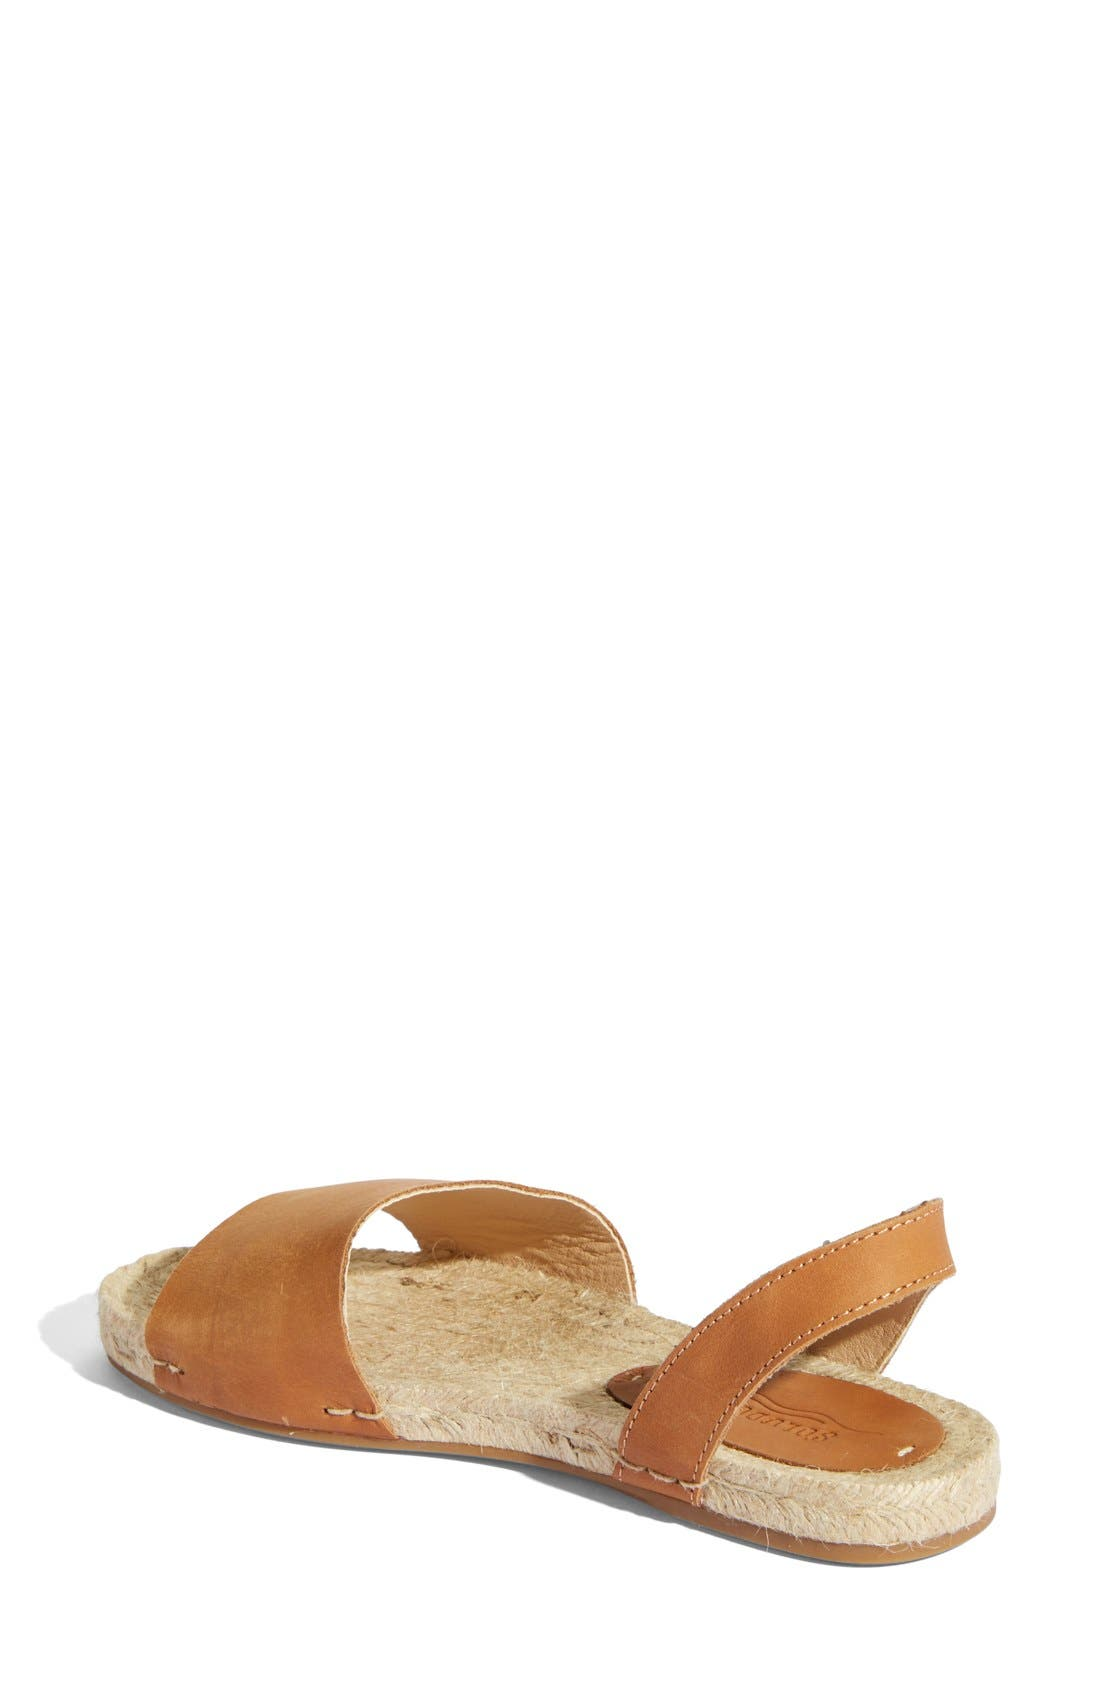 Alternate Image 2  - Soludos Slingback Sandal (Women)